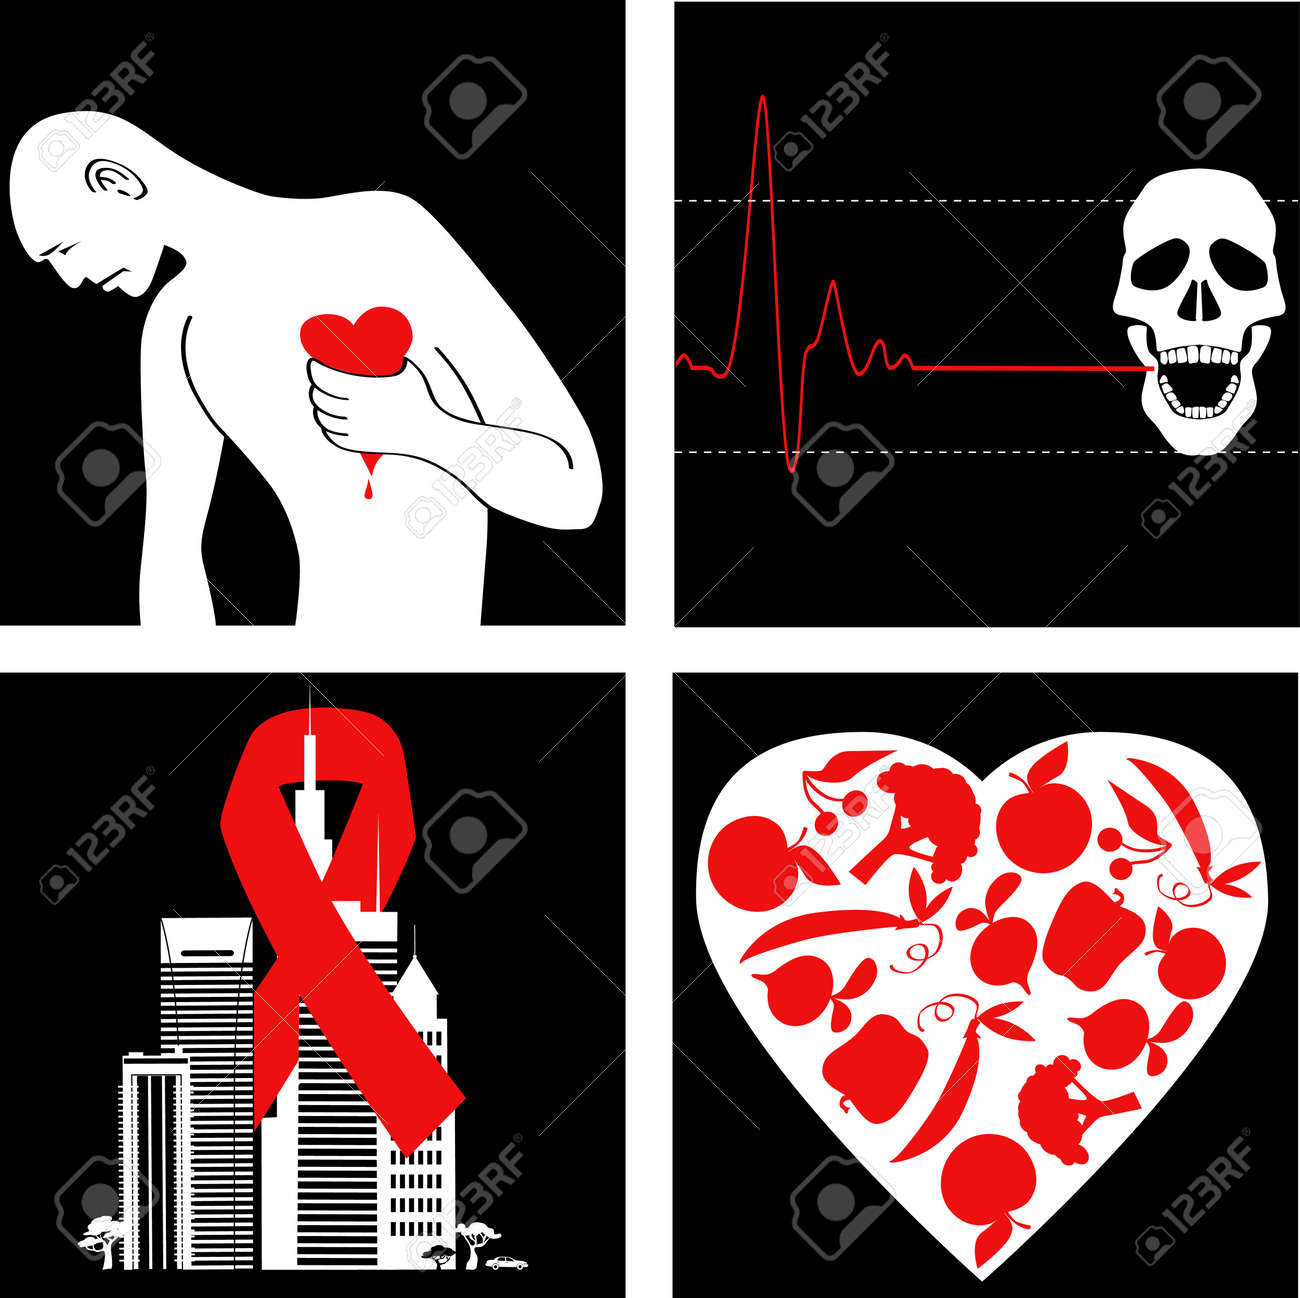 Heart Attack Prevention Set Of Icons With Symbol For Cardiovascular